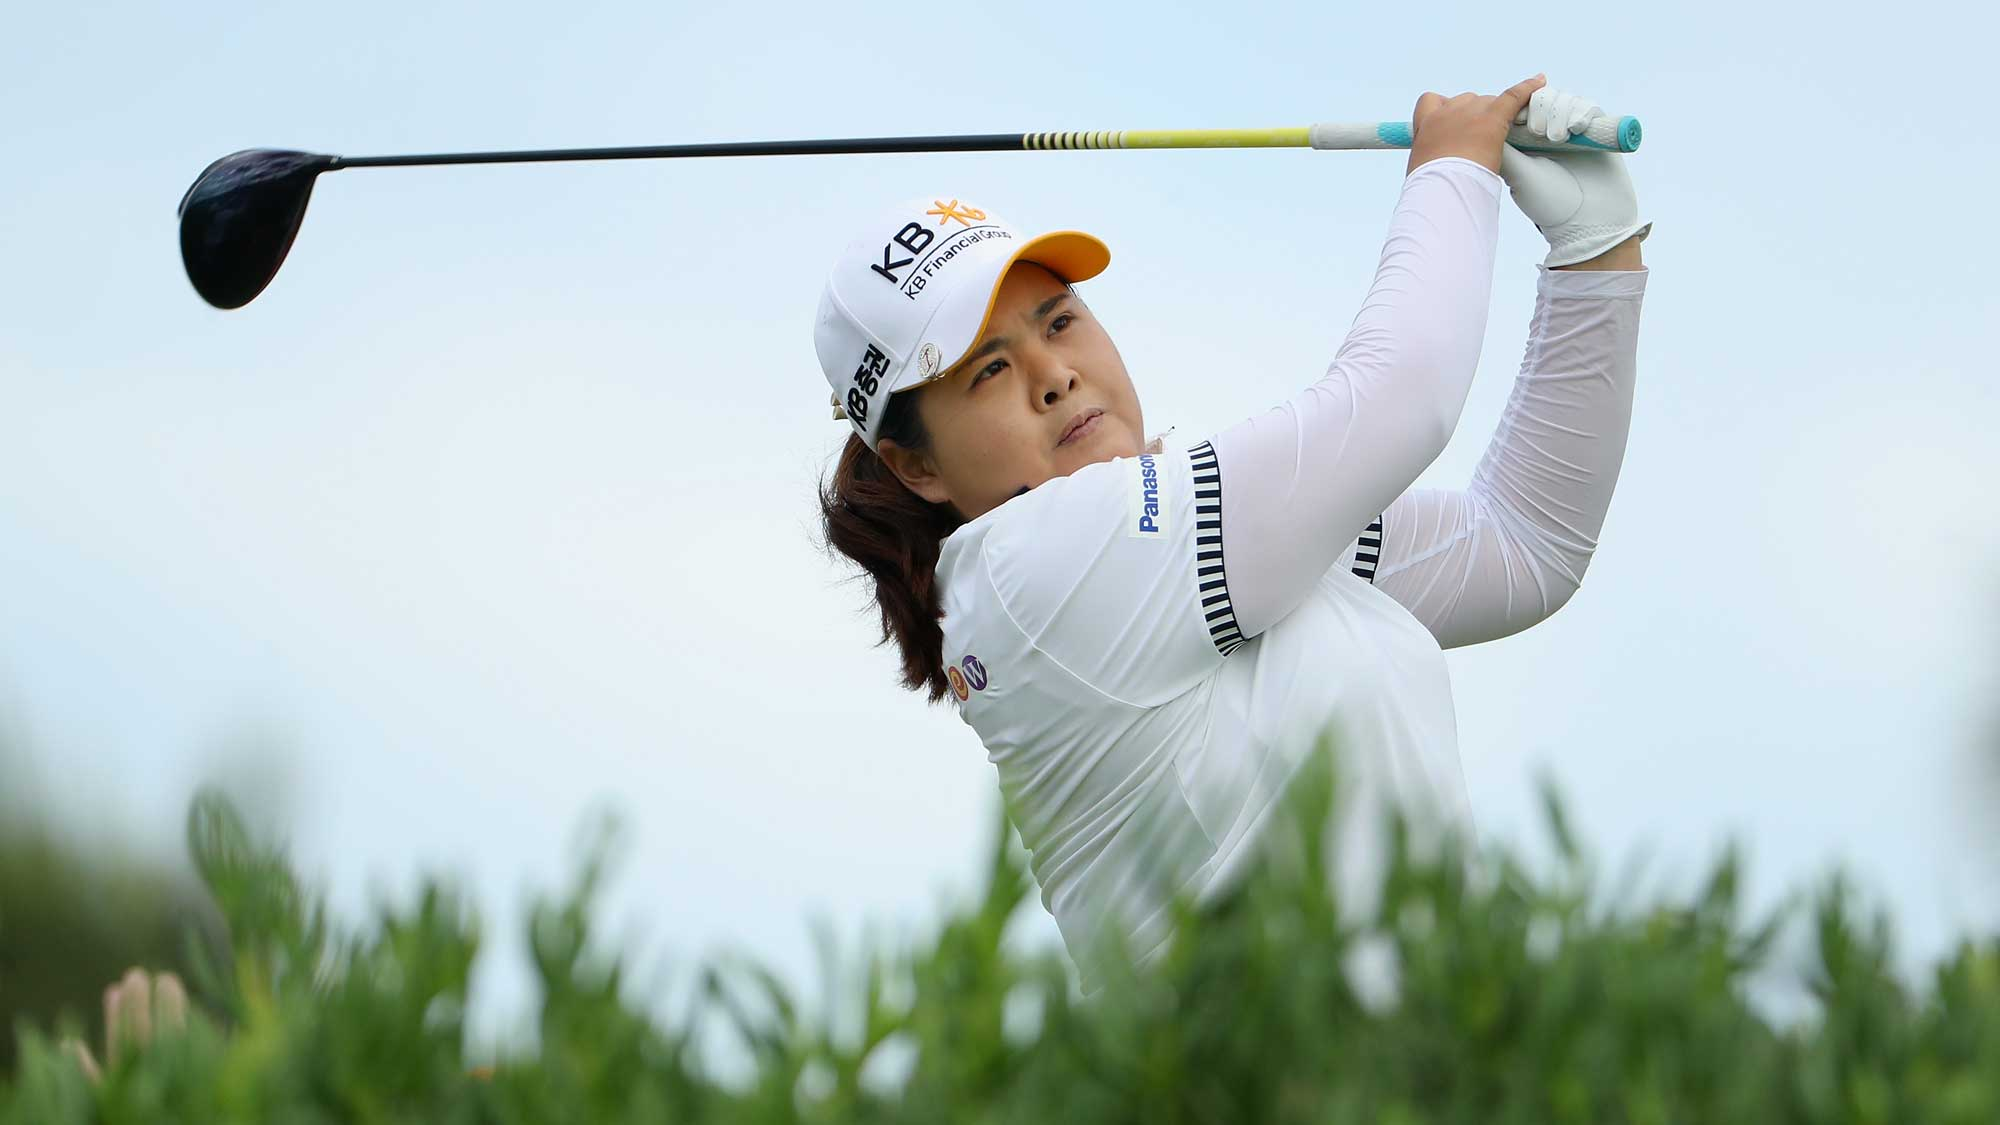 Inbee Park of the Republic of Korea plays a tee shot on the 13th hole during the second round of the LPGA LOTTE Championship Presented By Hershey